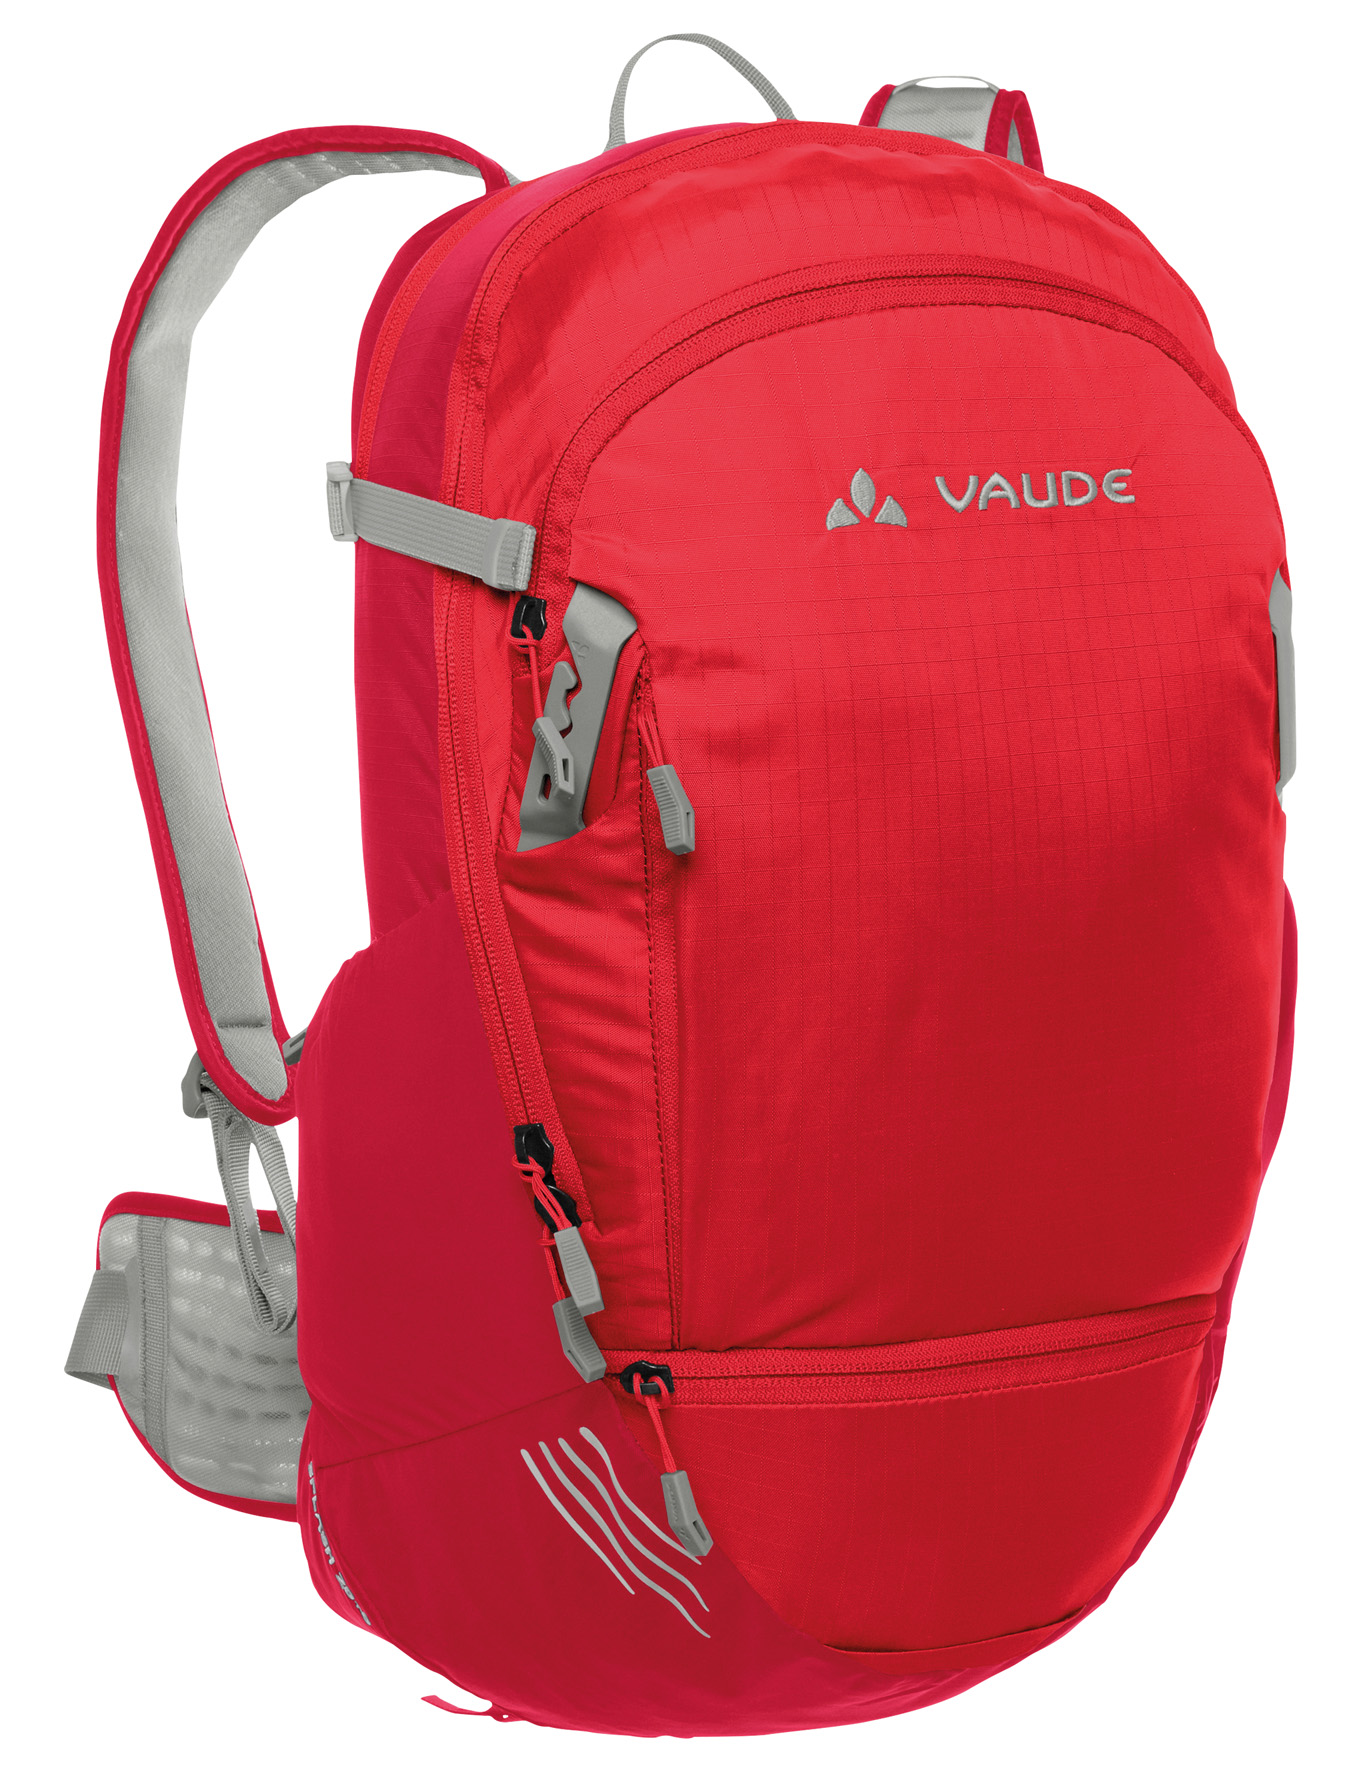 VAUDE Splash 20+5 magma  - VAUDE Splash 20+5 magma